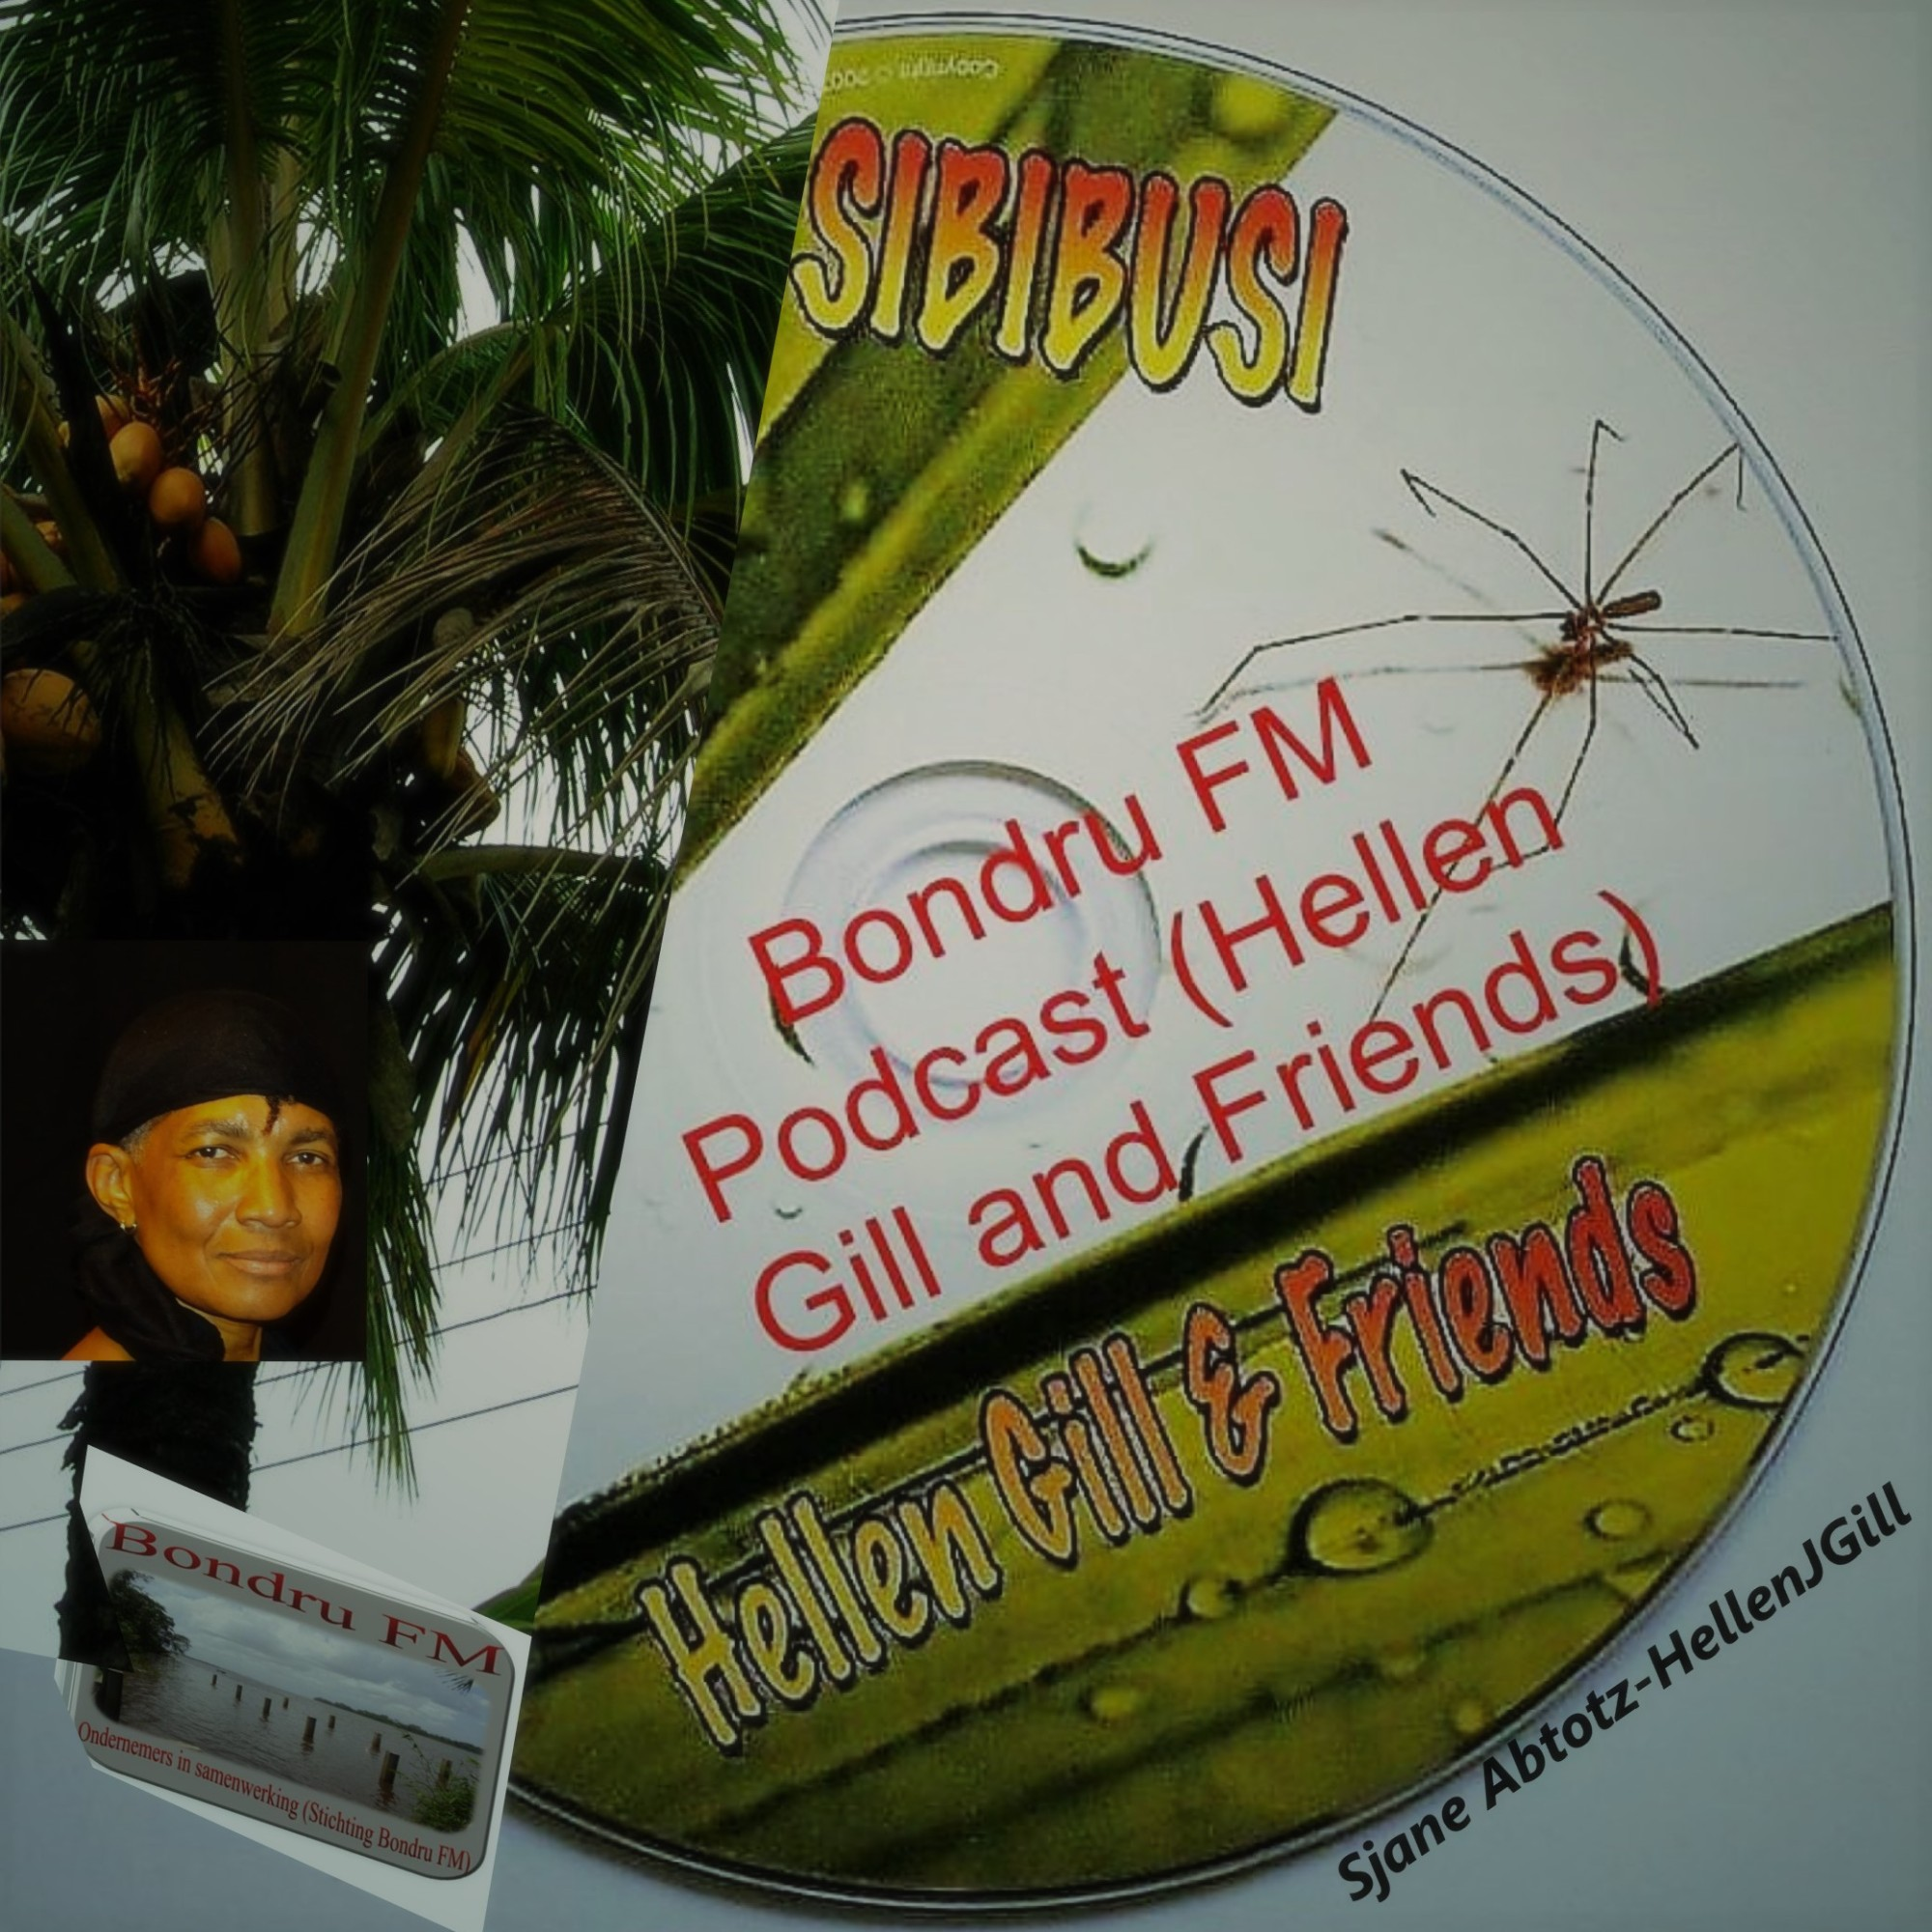 Bondru FM Podcast Category (Arts and Culture). Find members of Network Hellen Gill and Friends, Online in search engines.